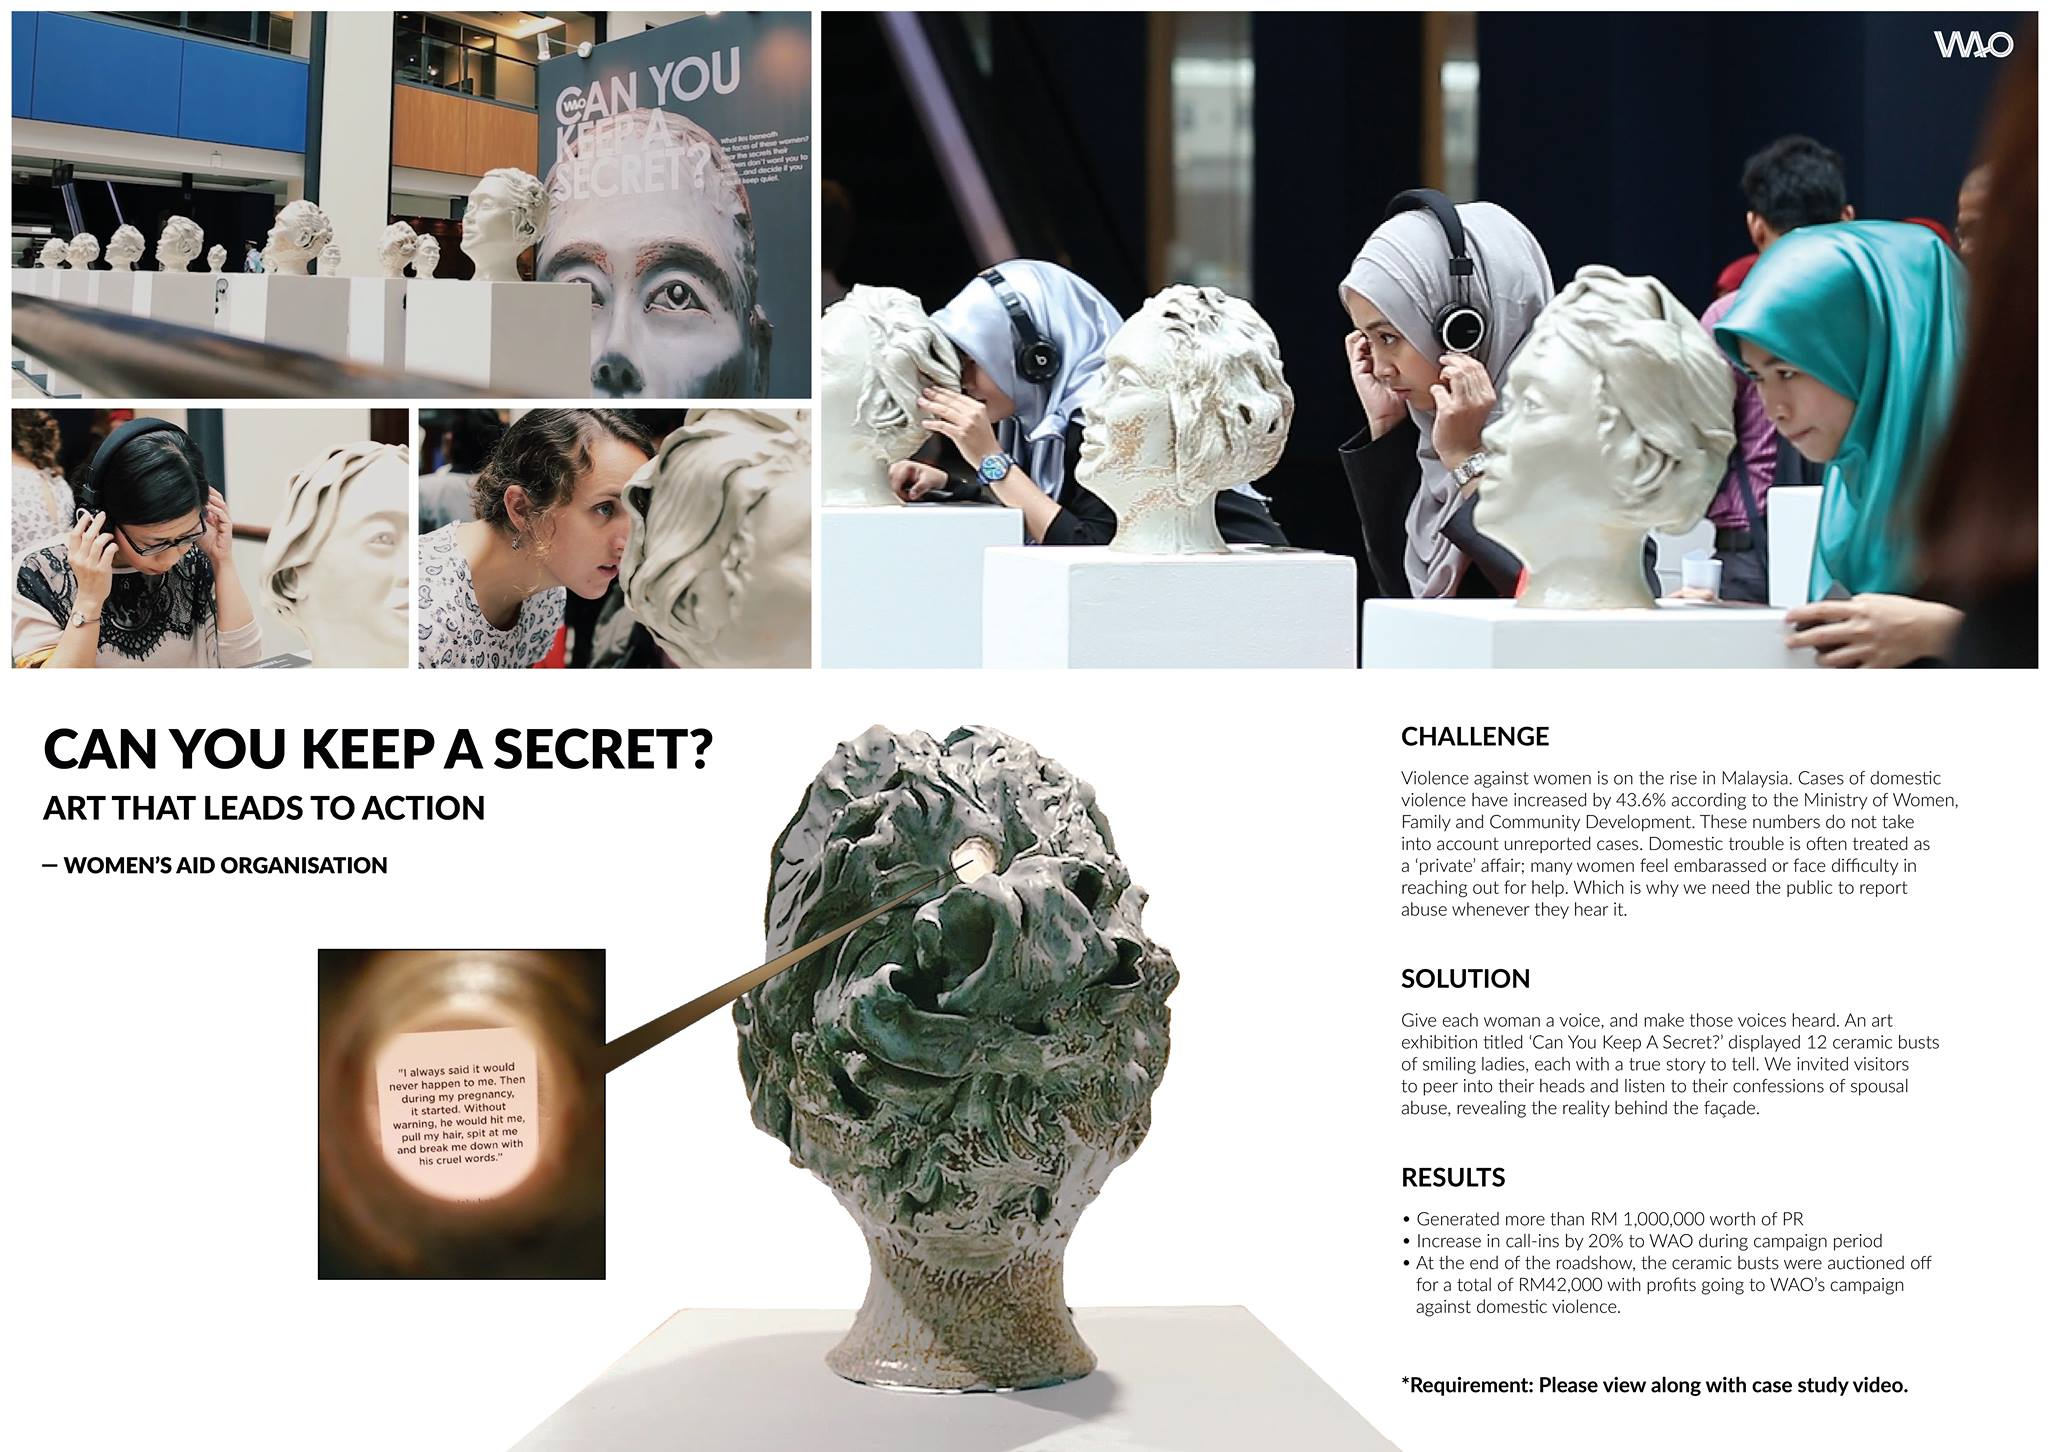 "WAO ""Can you keep a secret?""    Awarded:   Kancils 2016, Silver (Promo & Activation) Kancils 2016, Silver (Innovative Use of Media) Agency of the Year 2016 (Out of Home) London International Awards 2016, Finalist APPIES 2016, Finalist   Medium:   Sculpture    Installation:   Can you keep a secret?    Year:  2016"